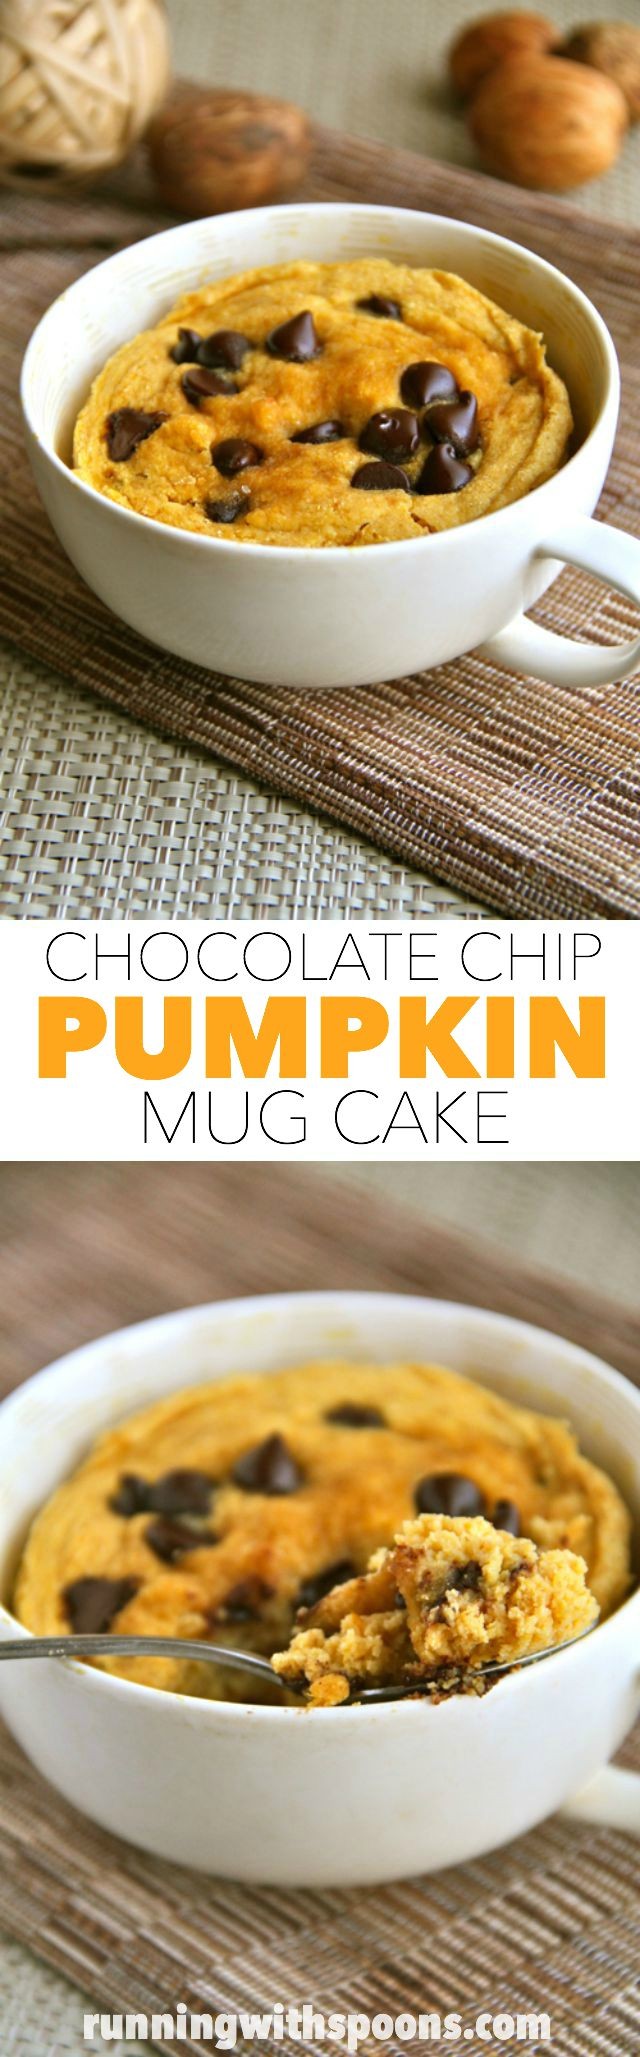 chocolate chip pumpkin mug cake . - . running with spoons .